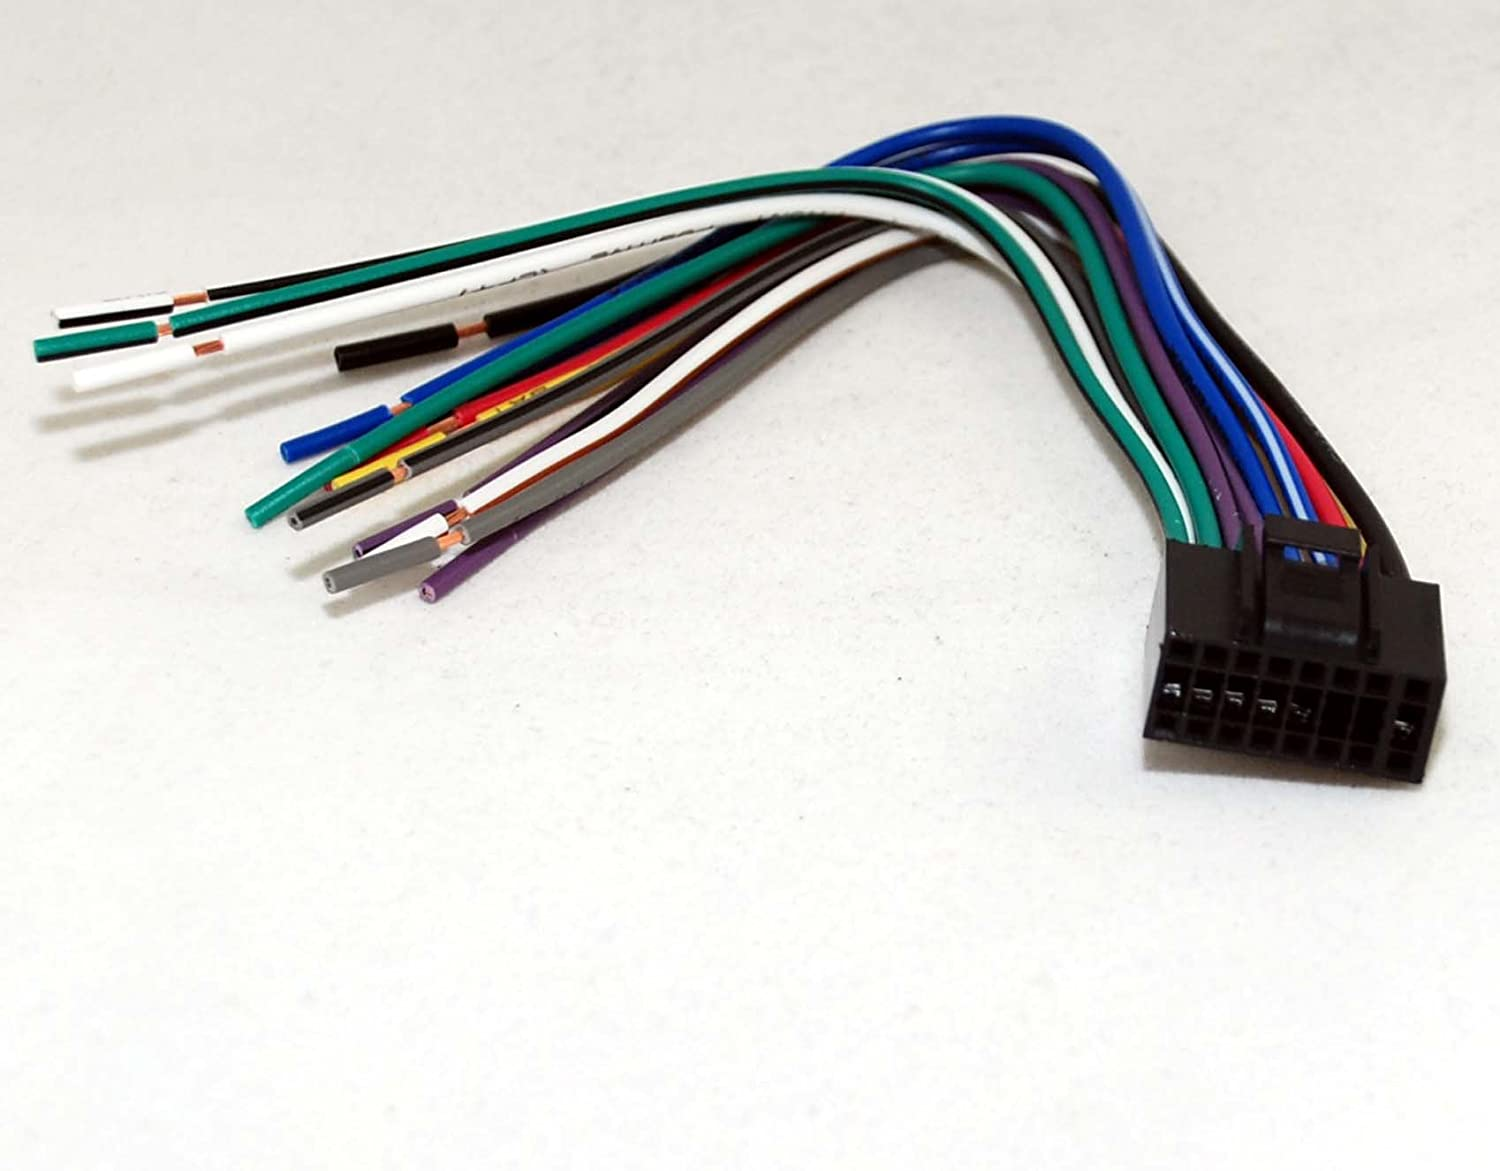 61Rzeblbo0L._SL1500_ amazon com xtenzi harness for dual 16 pin wire harness xdvd8181 3-Way Switch Wiring Diagram for Switch To at readyjetset.co